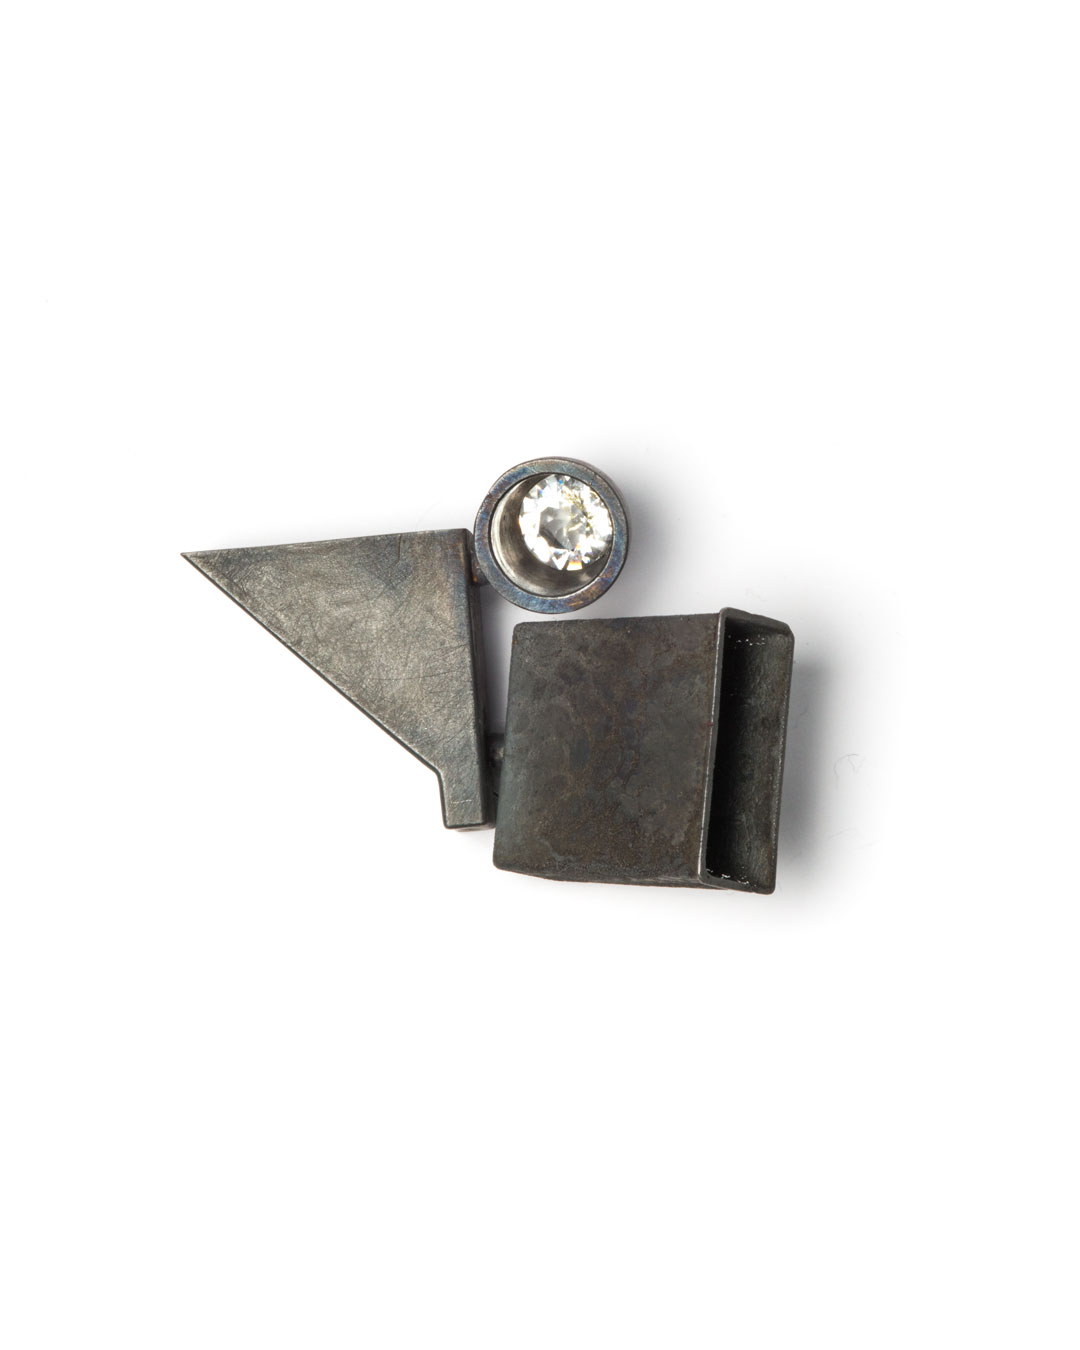 Winfried Krüger, untitled, 2010, brooch; oxidised silver, glass, 100 x 50 mm, €2300